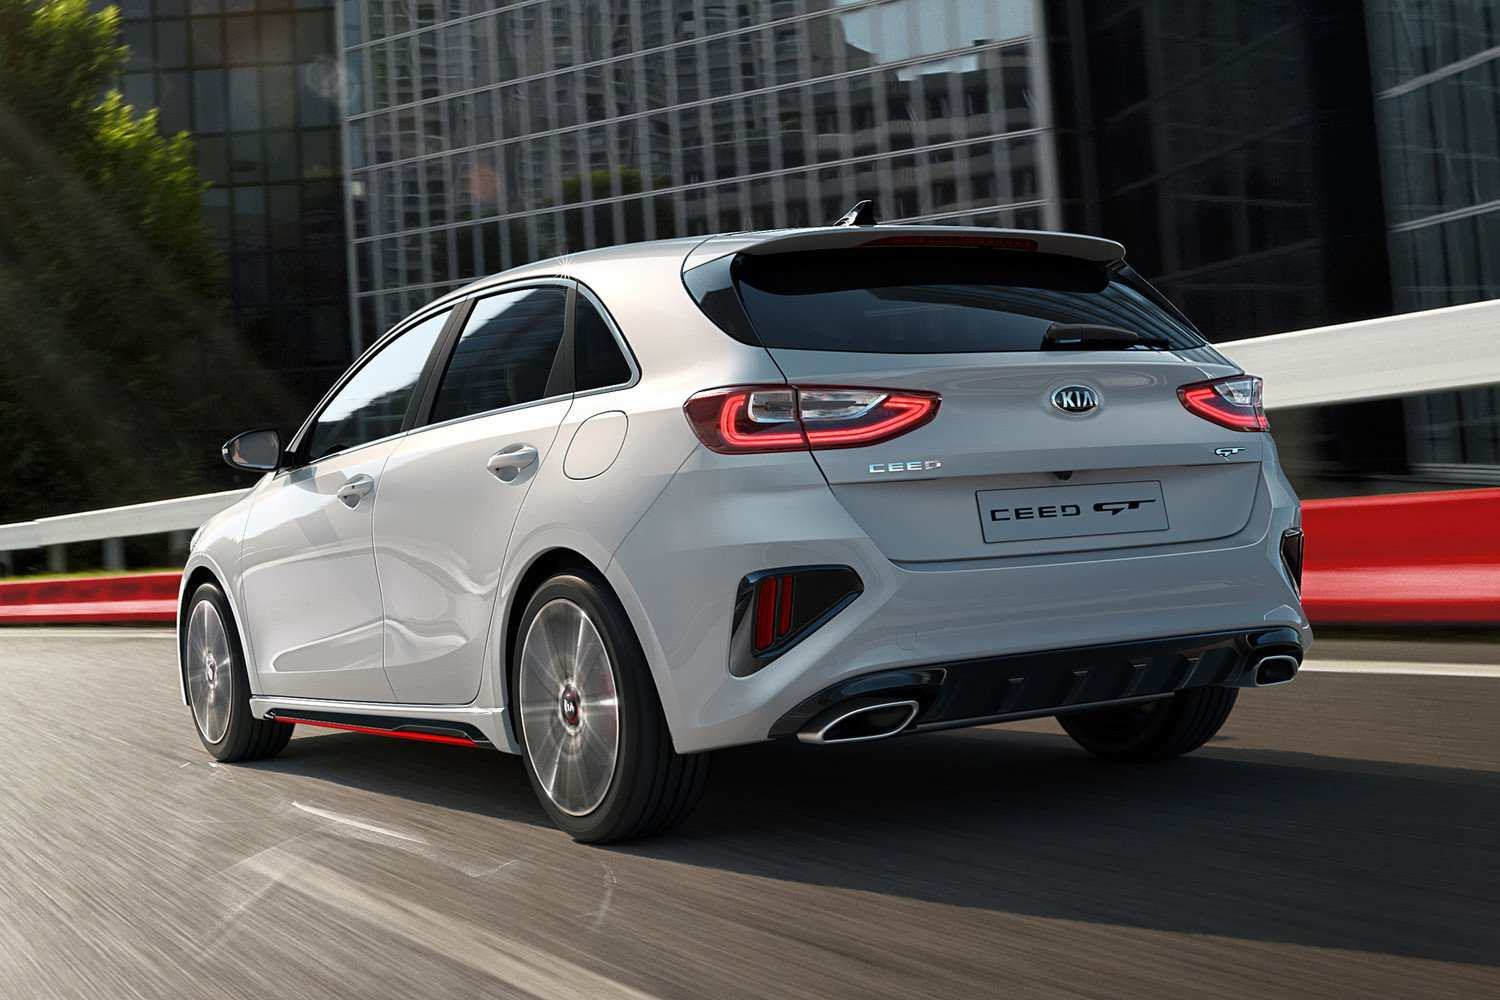 29 A Kia Gt 2019 Price Design And Review